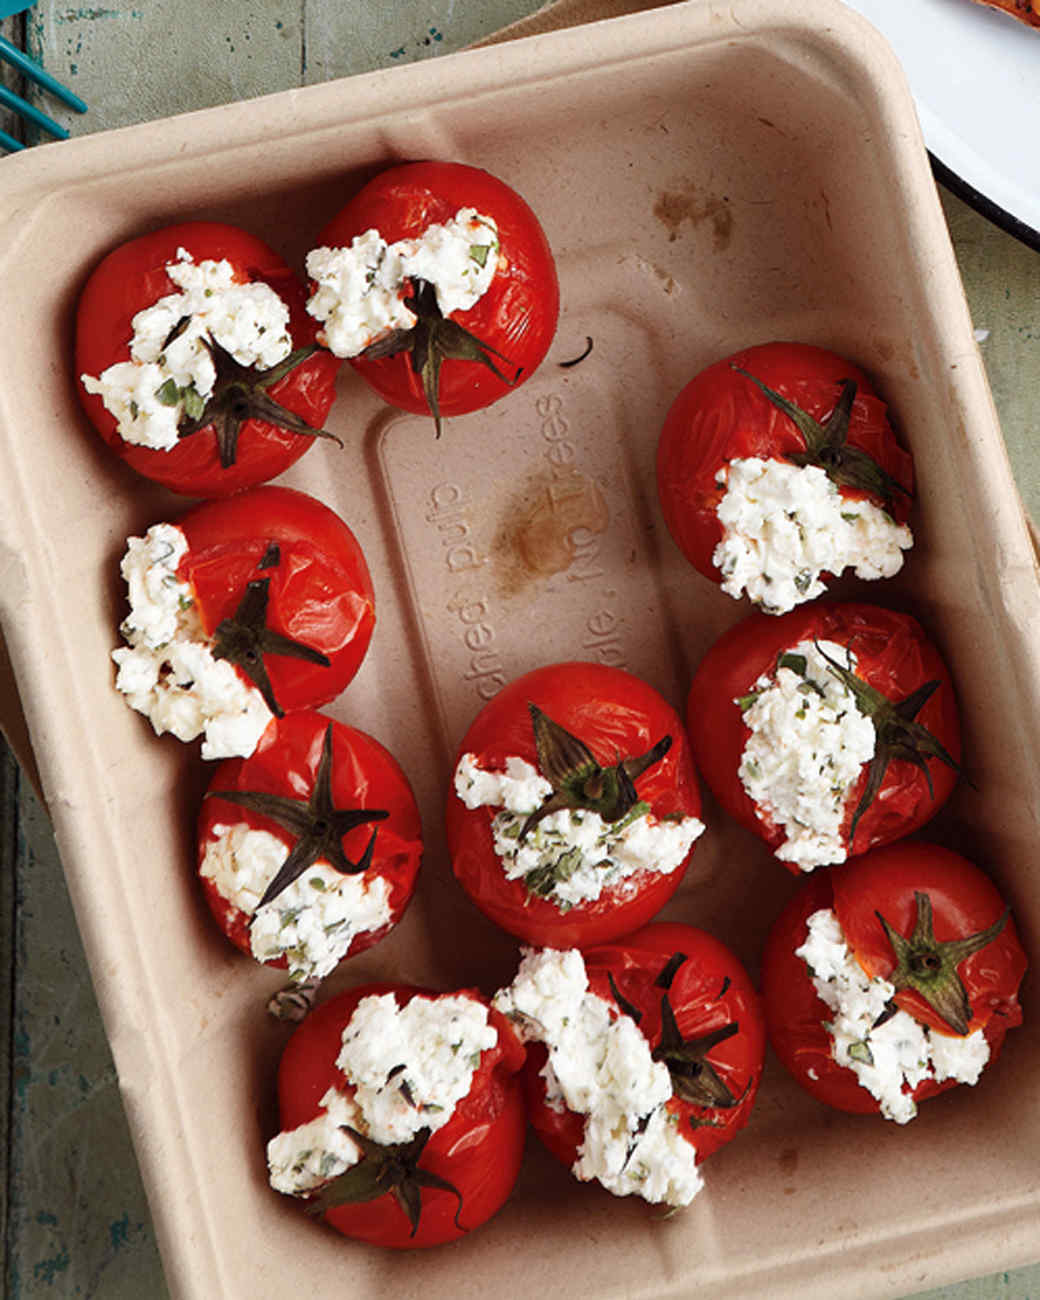 Stuffed Tomatoes